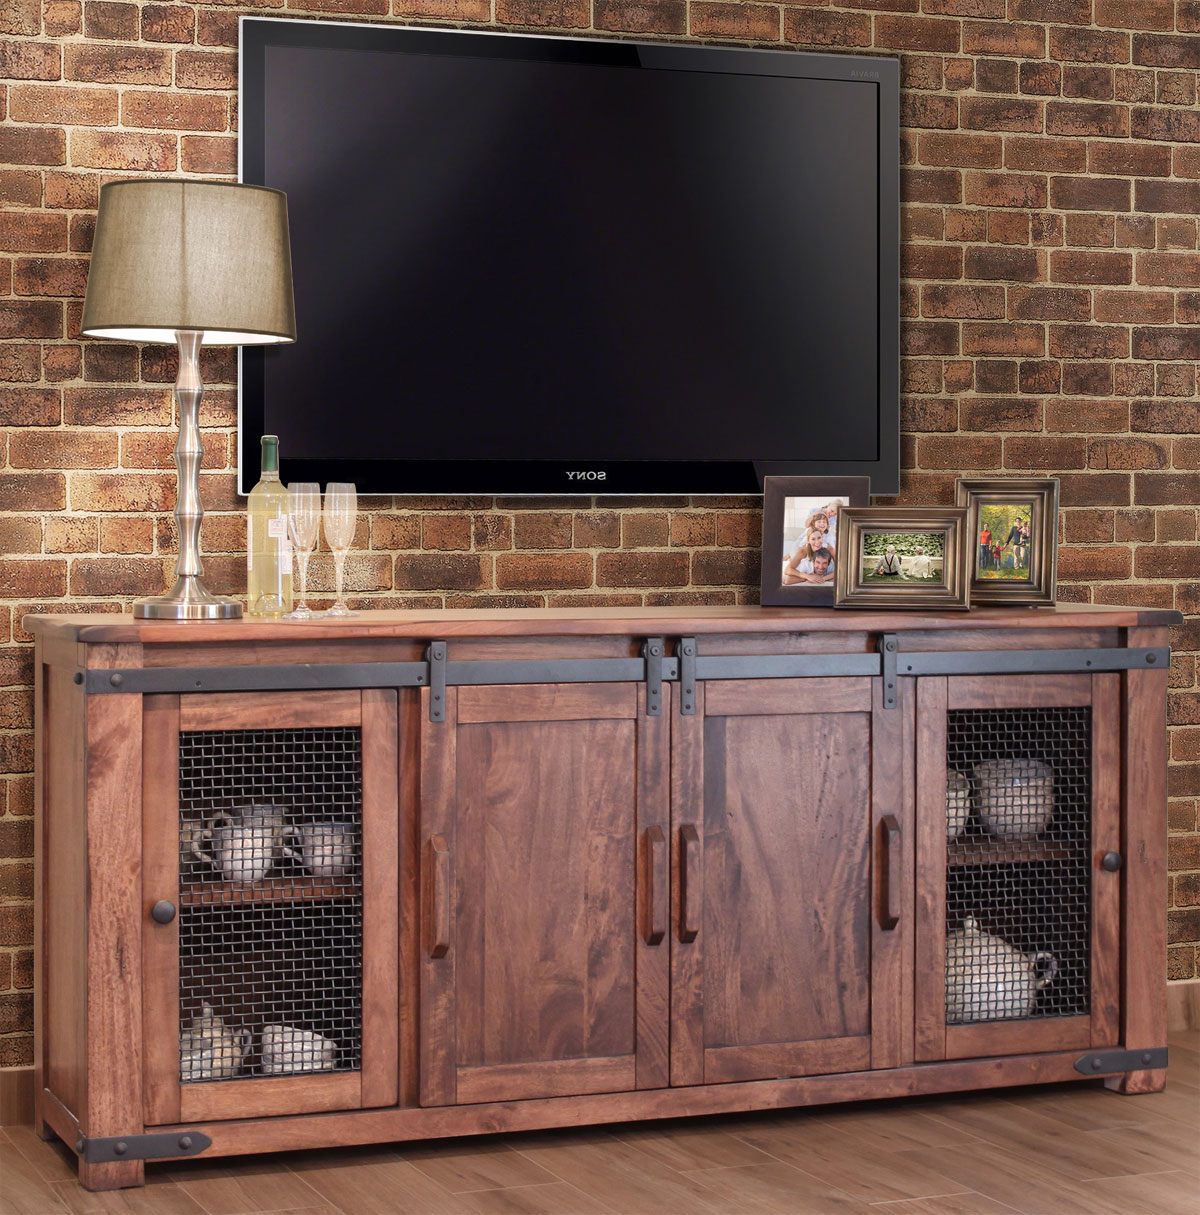 Shabby Chic Tv Stand Ideas Fireplace Lowes Small Target Rustic Pertaining To Current Rustic Furniture Tv Stands (View 14 of 20)